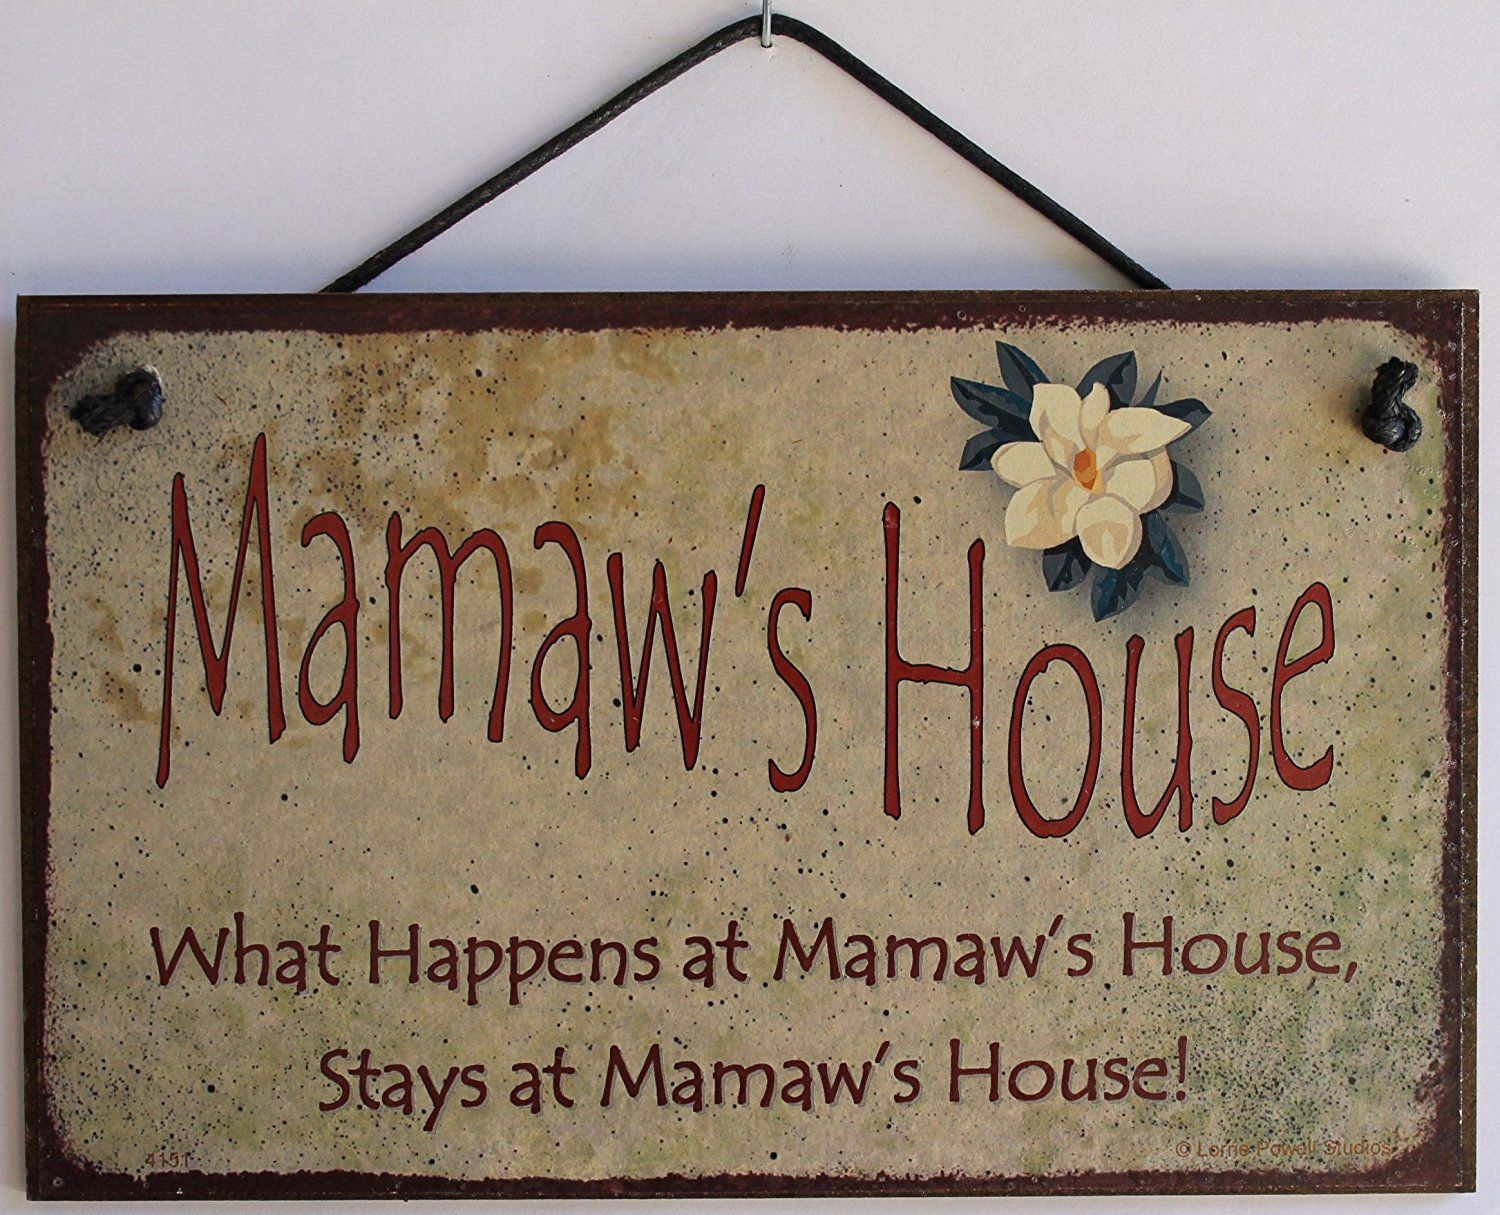 "5x8 Vintage Style Sign with Magnolia Saying, ""Mamaw's House What Happens at Mamaw's House, Stays at Mamaw's House!"" Decorative Fun Universal Household Signs from Egbert's Treasures"